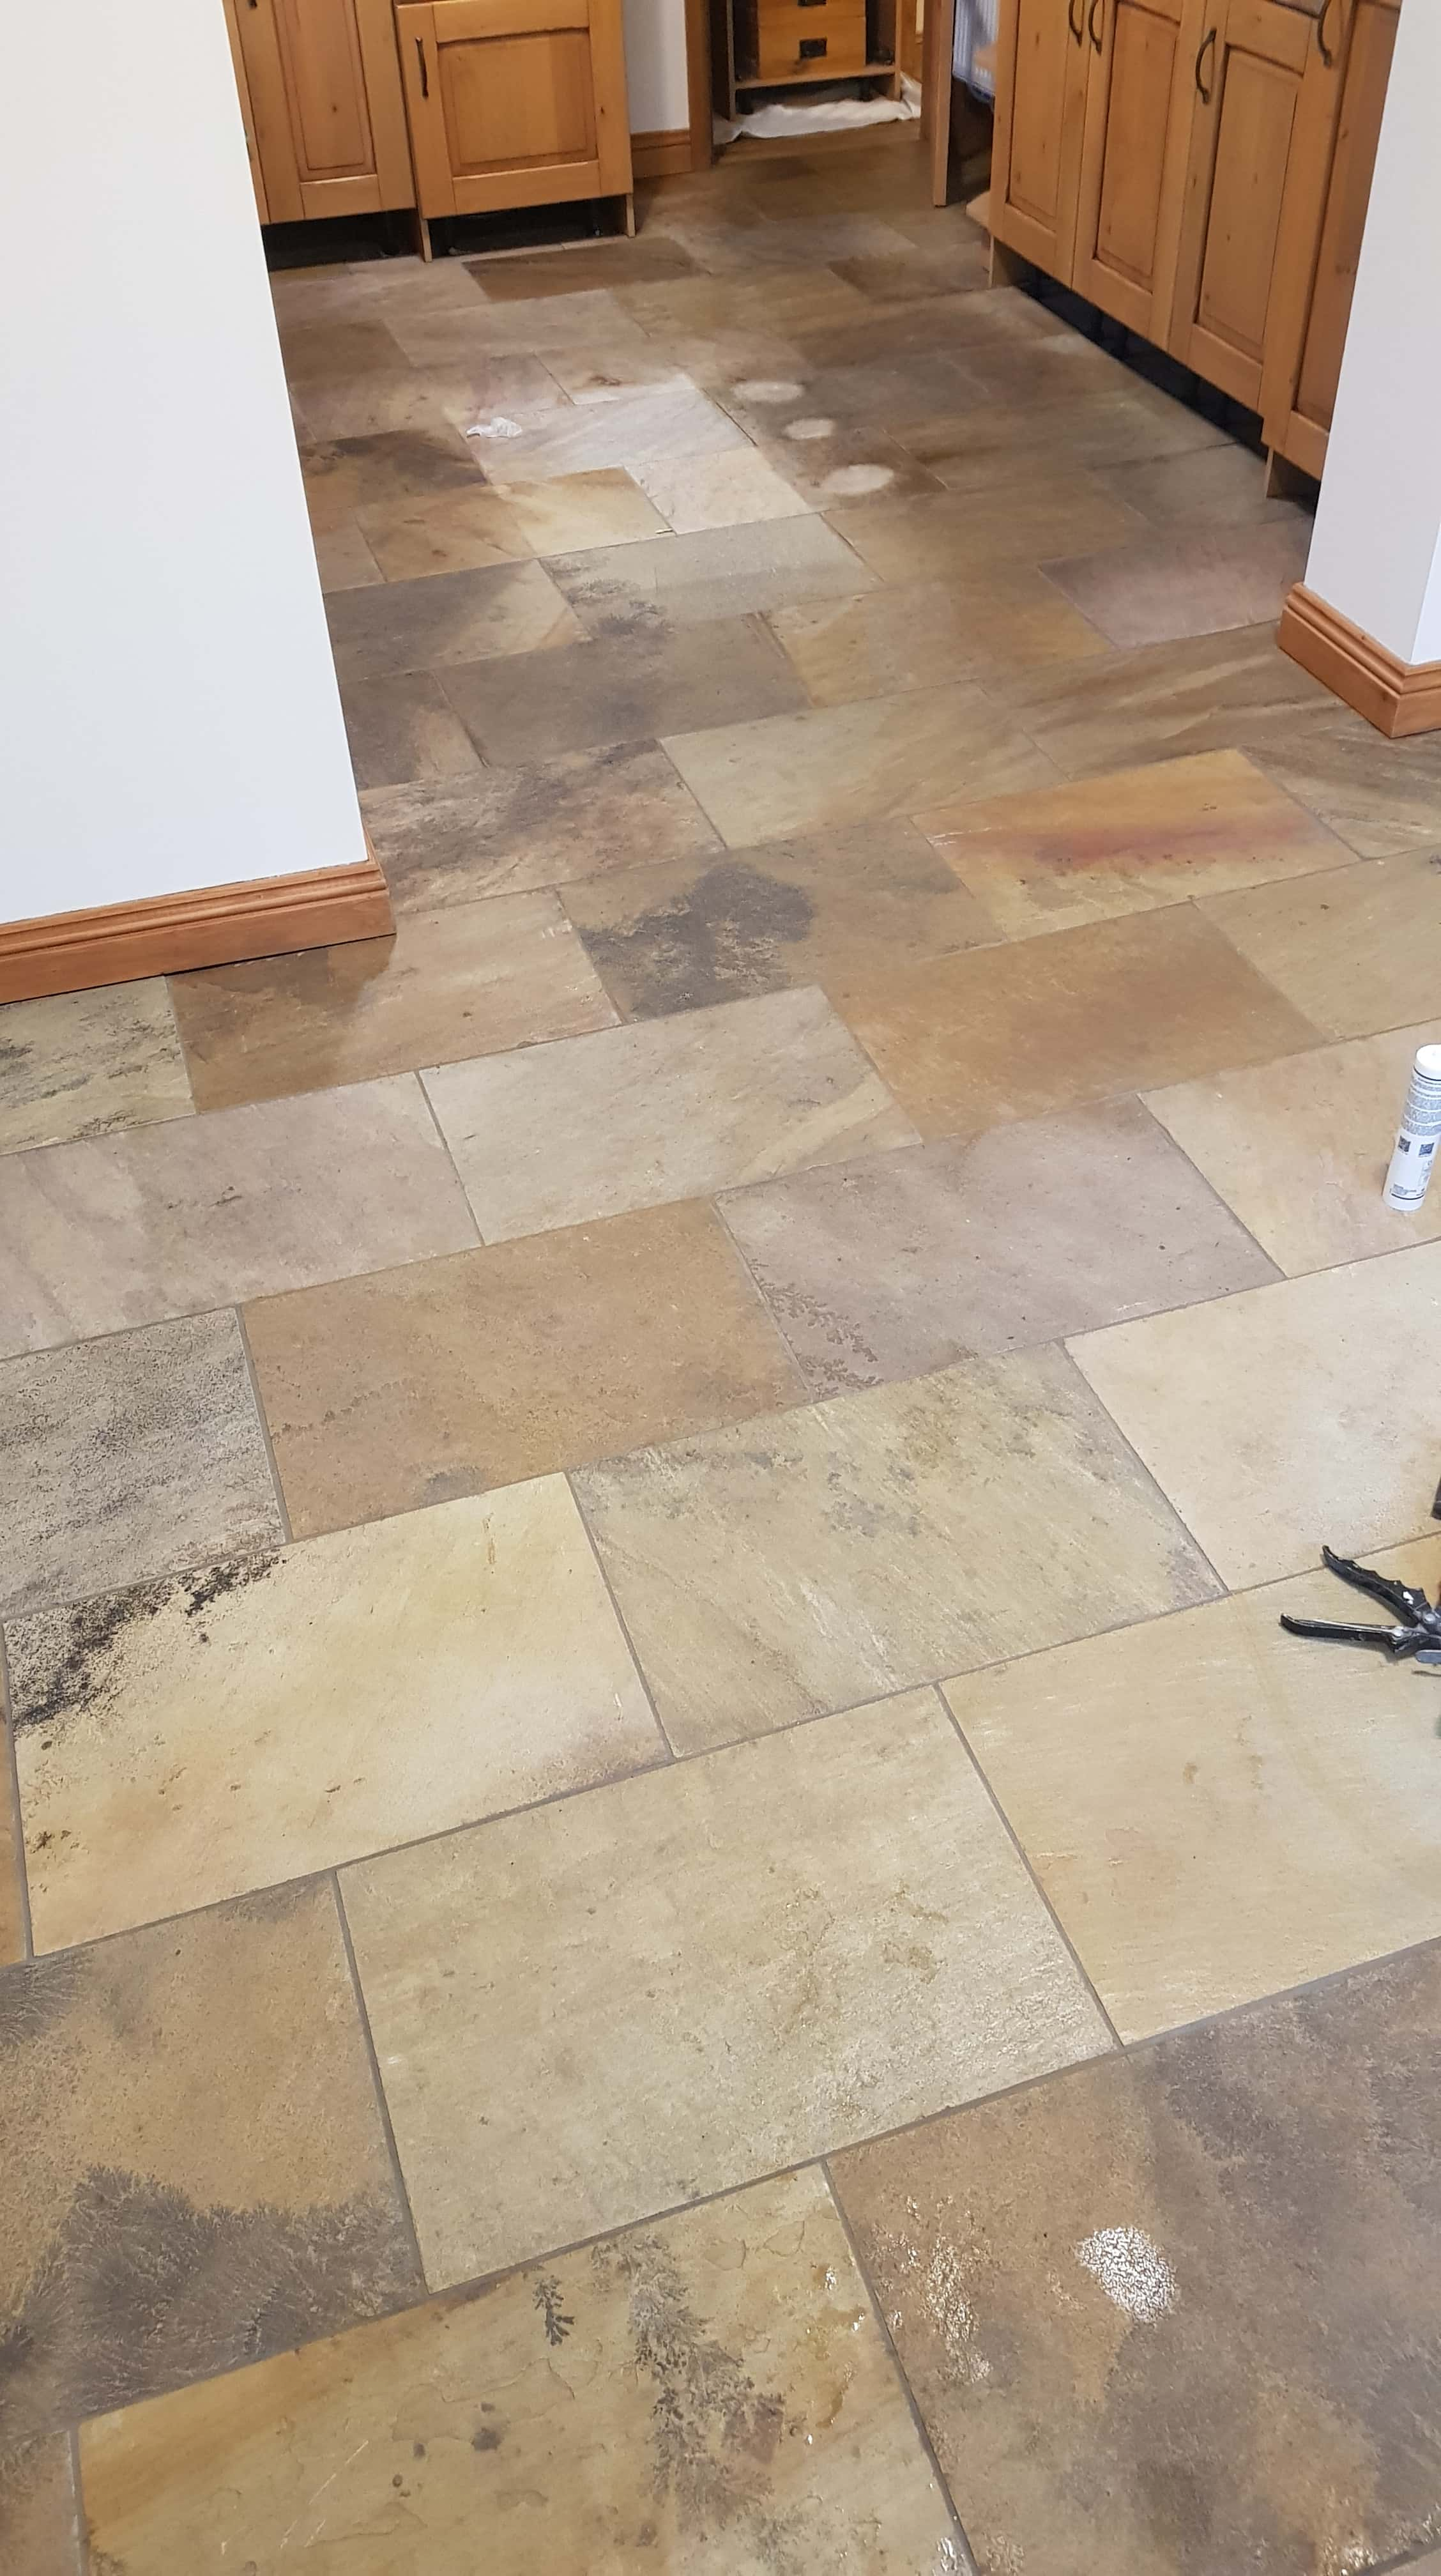 Sandstone Tiled Floor Before Renovation in Mapplewell